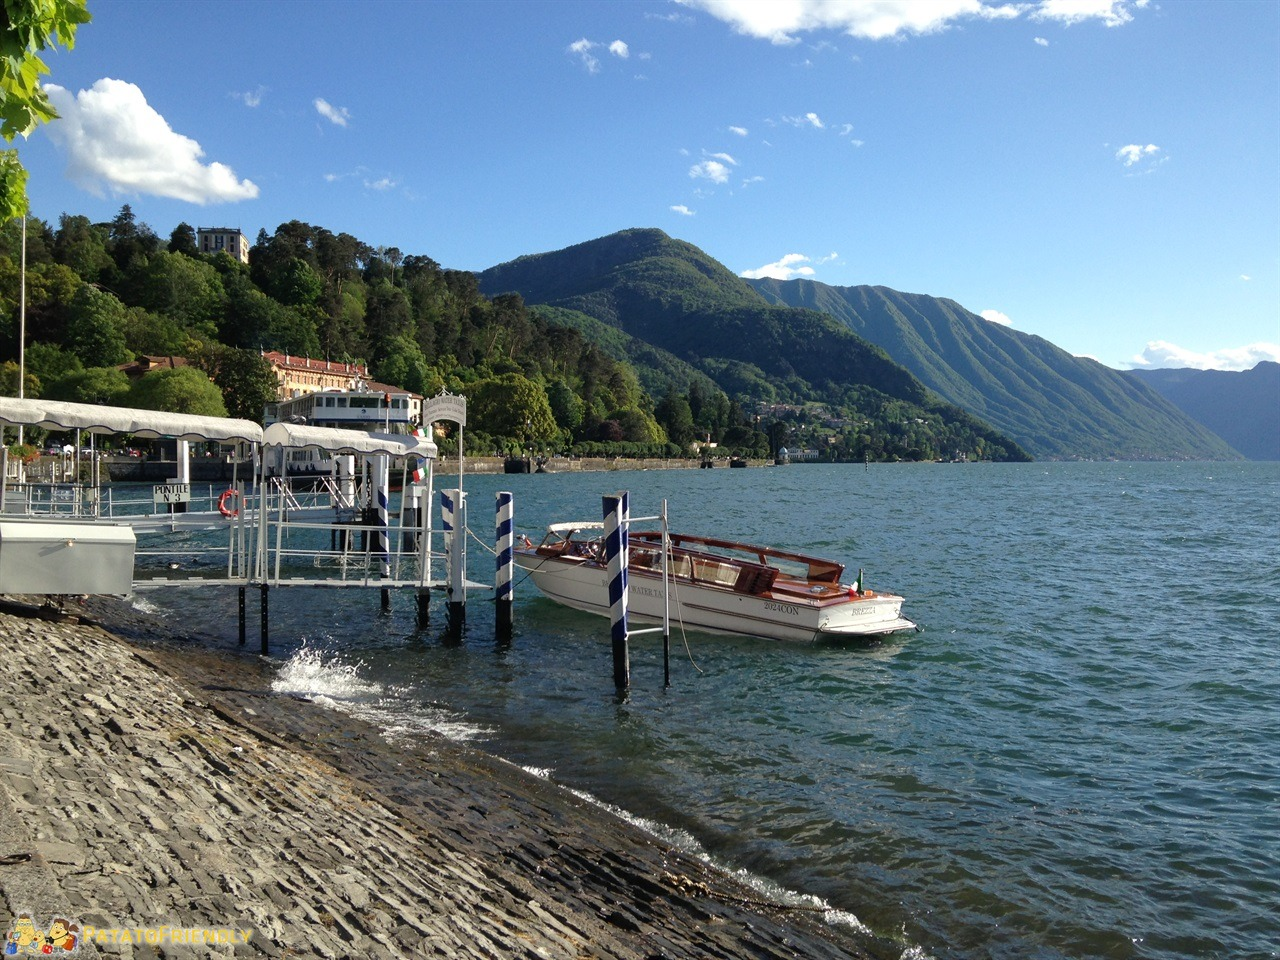 [cml_media_alt id='6193']Bellagio - Il lago di Como[/cml_media_alt]